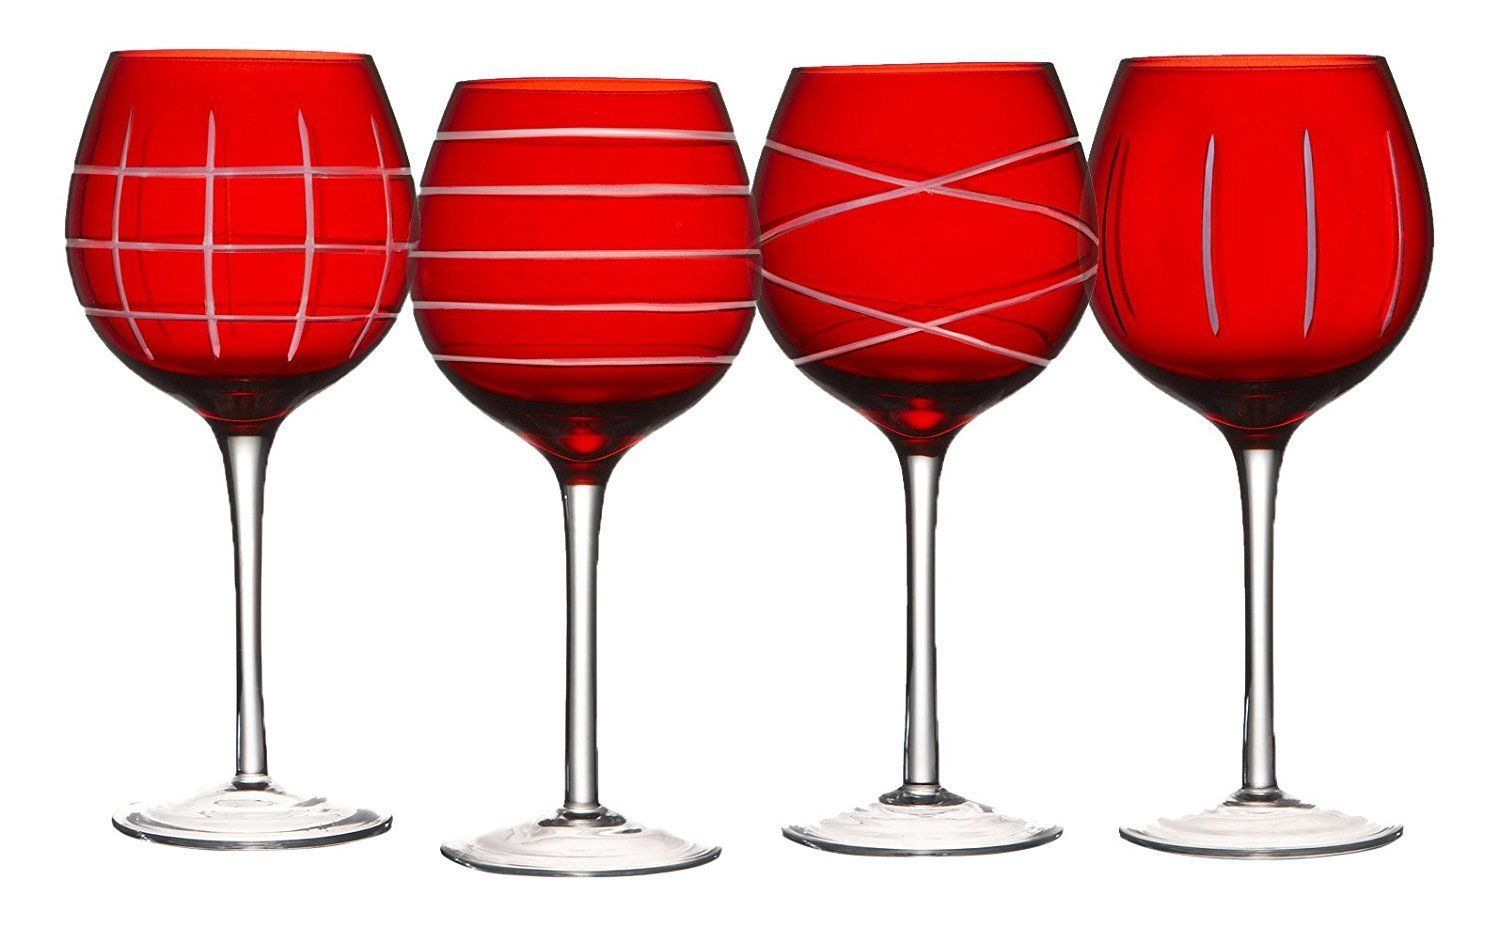 Bold But Classic These Elegant Crystal Goblets Will Add Color And Flair To Your Next Event Each Piece Of Crystal Stem Crystal Stemware Crystal Goblets Goblet